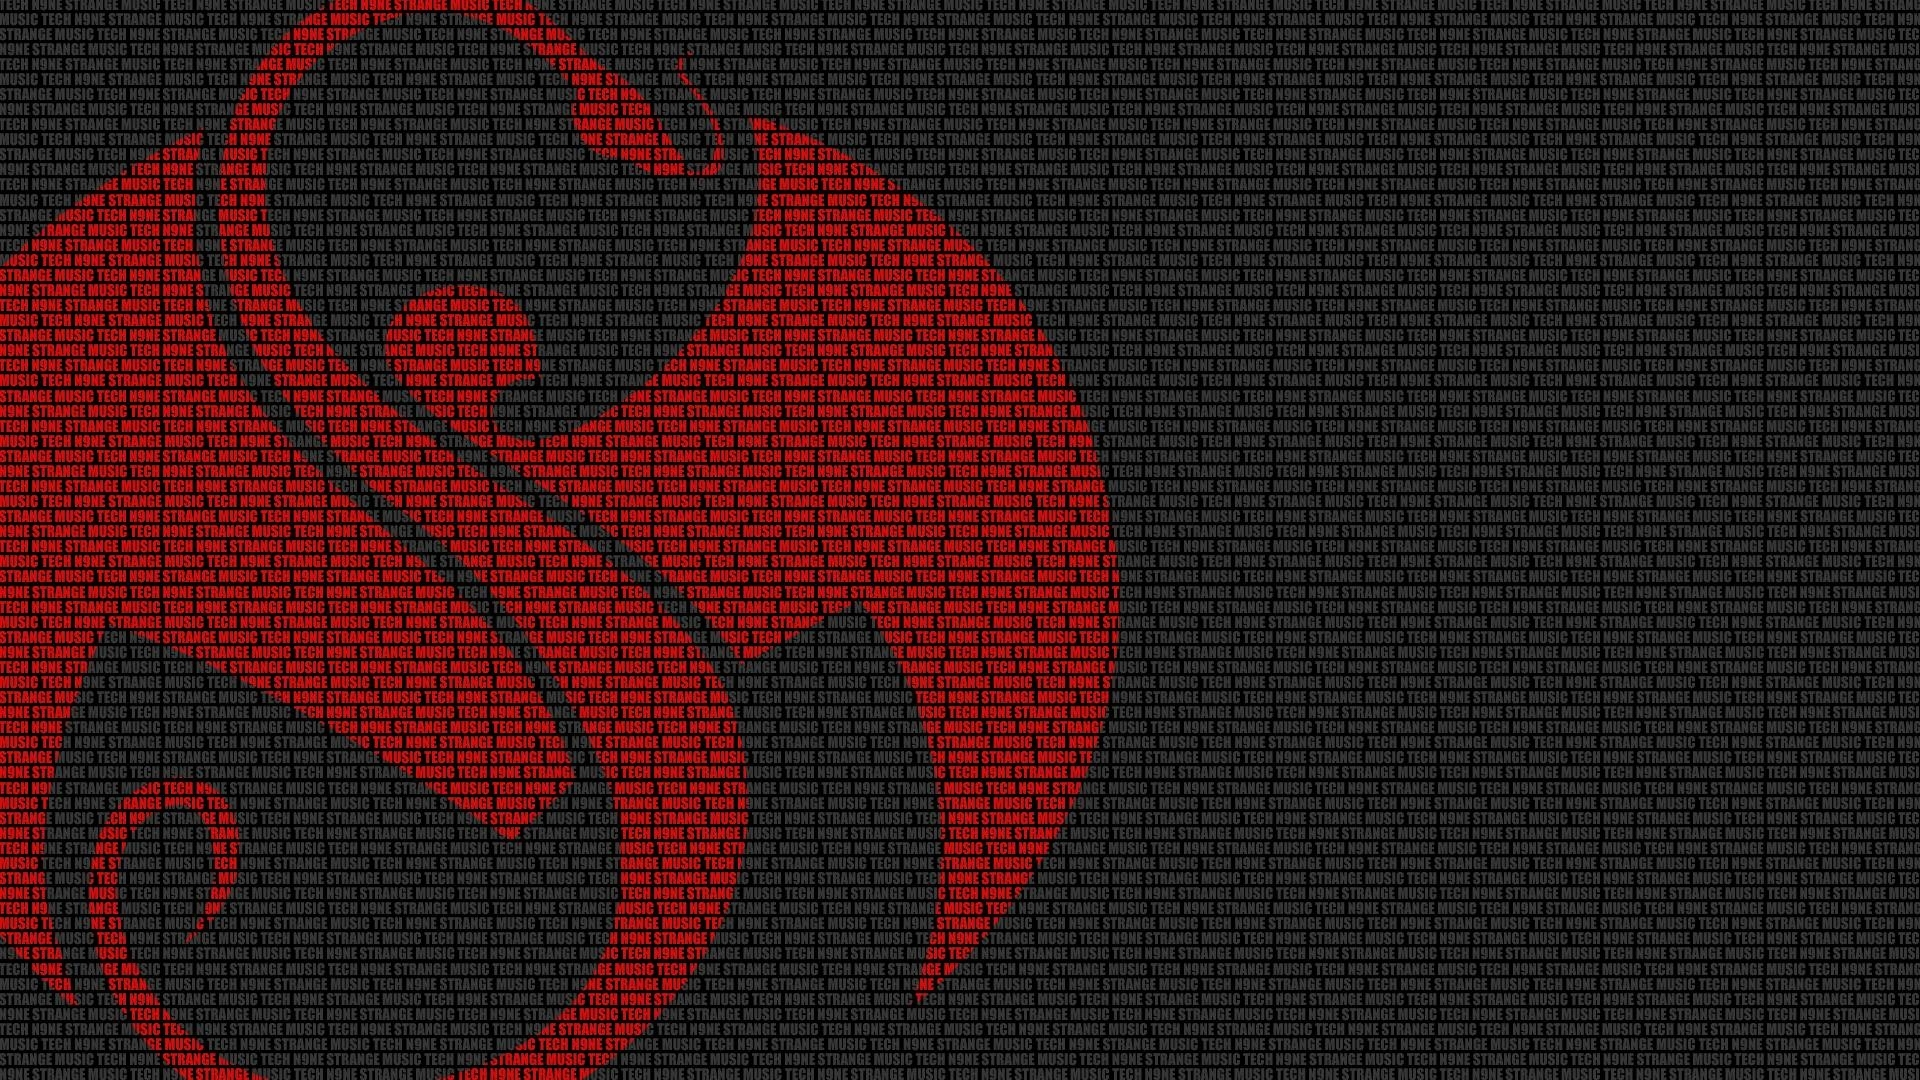 10 Top Strange Music Logo Wallpaper FULL HD 1920×1080 For PC Background